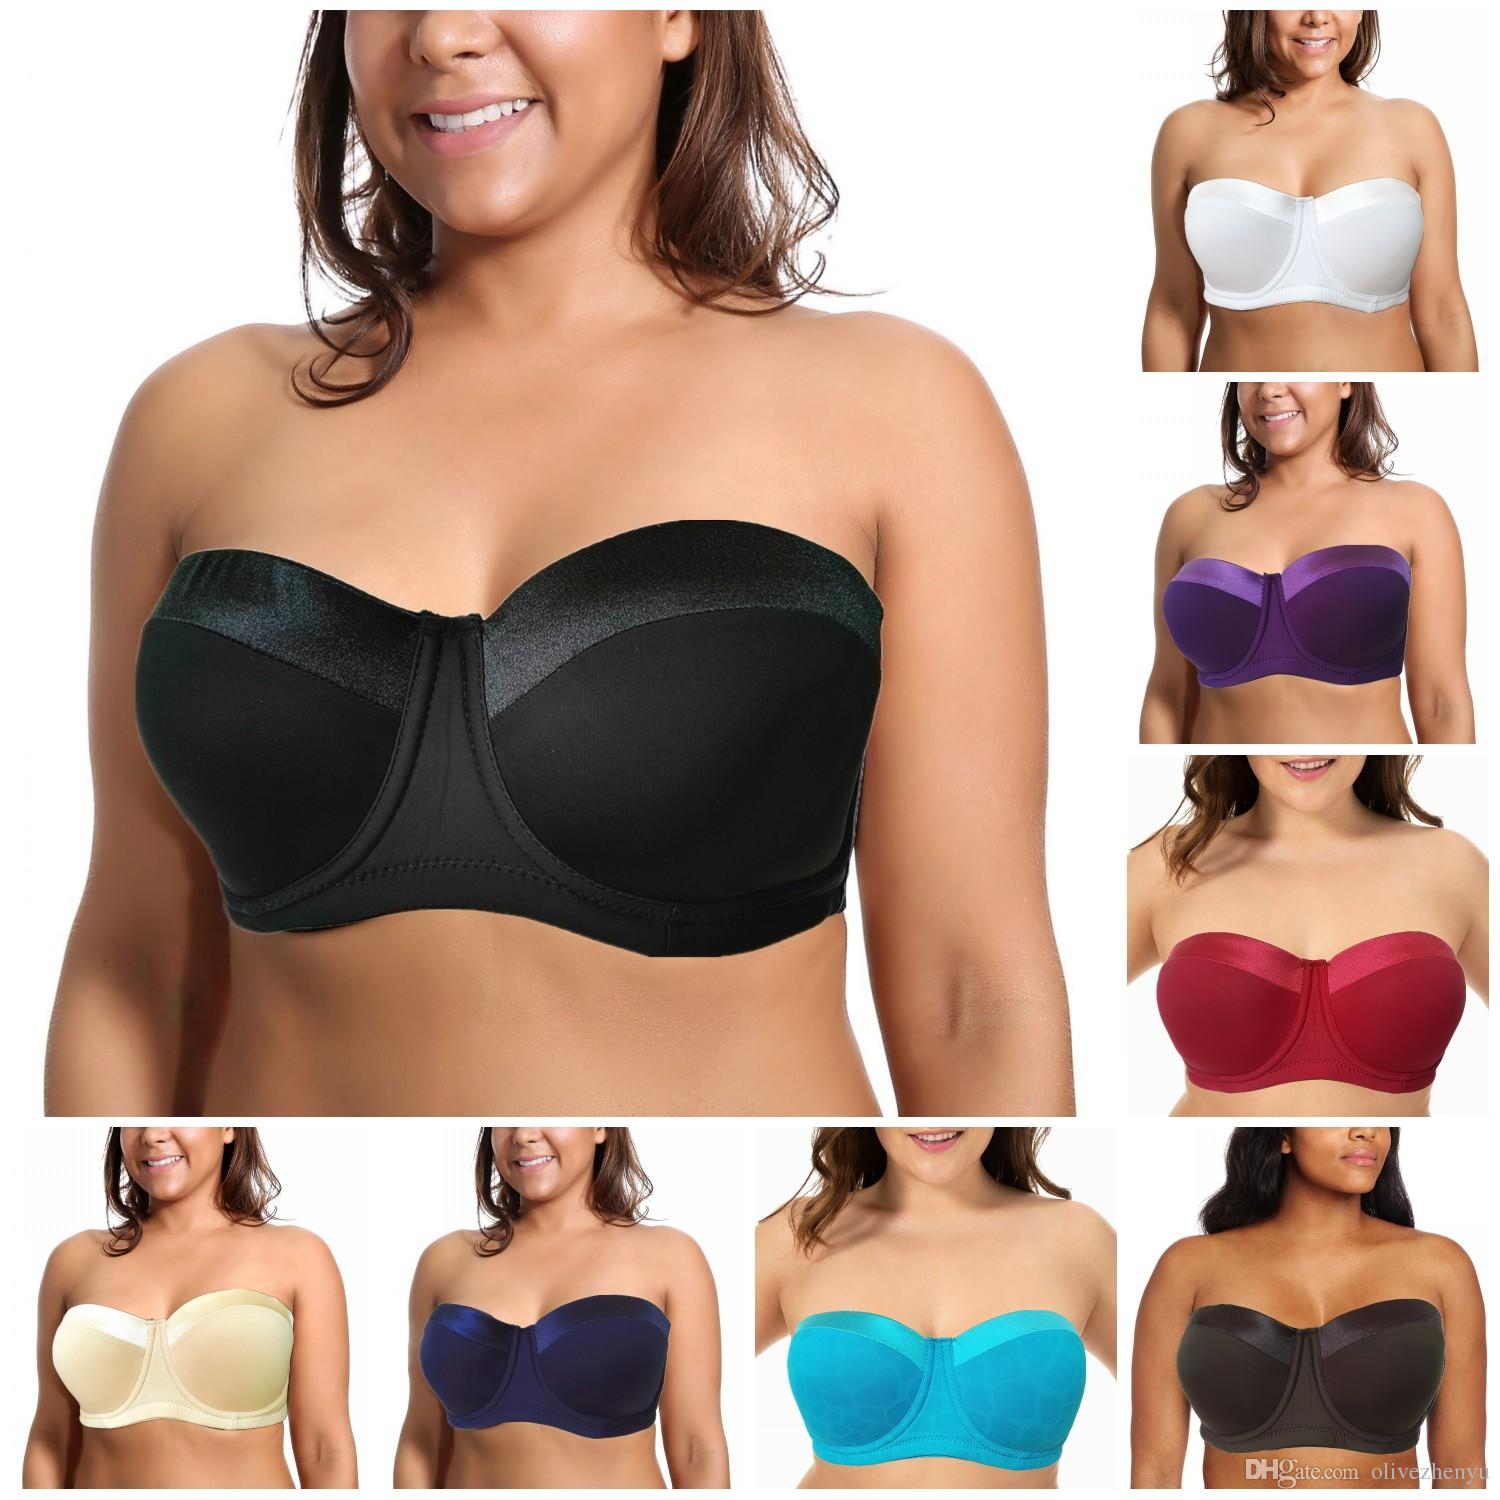 00bf552a42a0 2019 New Fashion High Quality 34 46 C D 1 2 Half Cup Seamless Bra  Adjustable Plus Big Size Push Up Women Sexy Bra Silicon Strapless H059 2  From Olivezhenyu